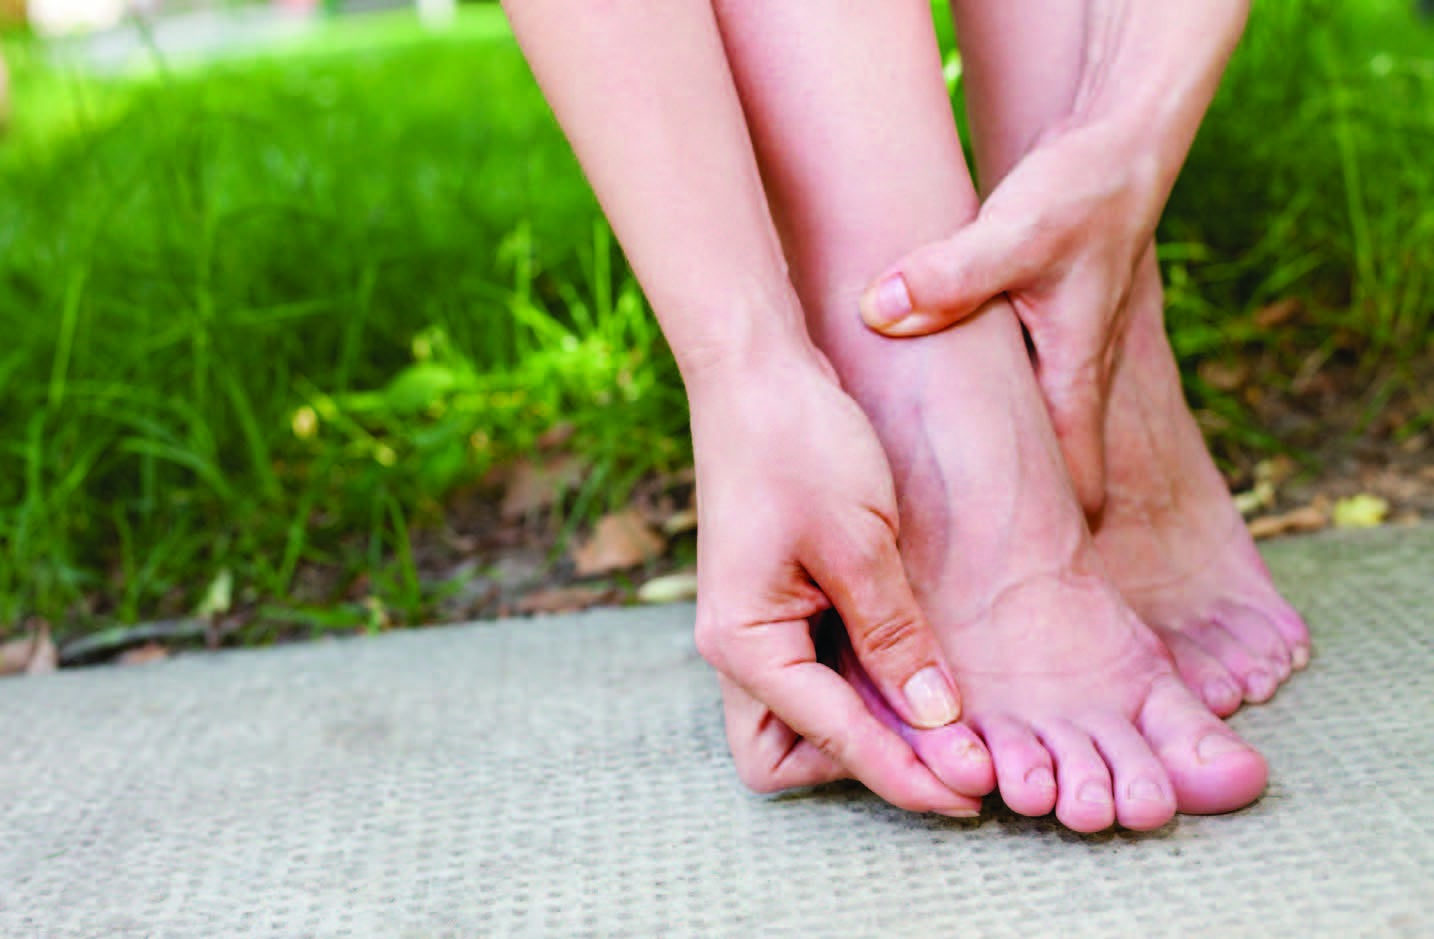 Best Home Remedies for Athlete's Foot